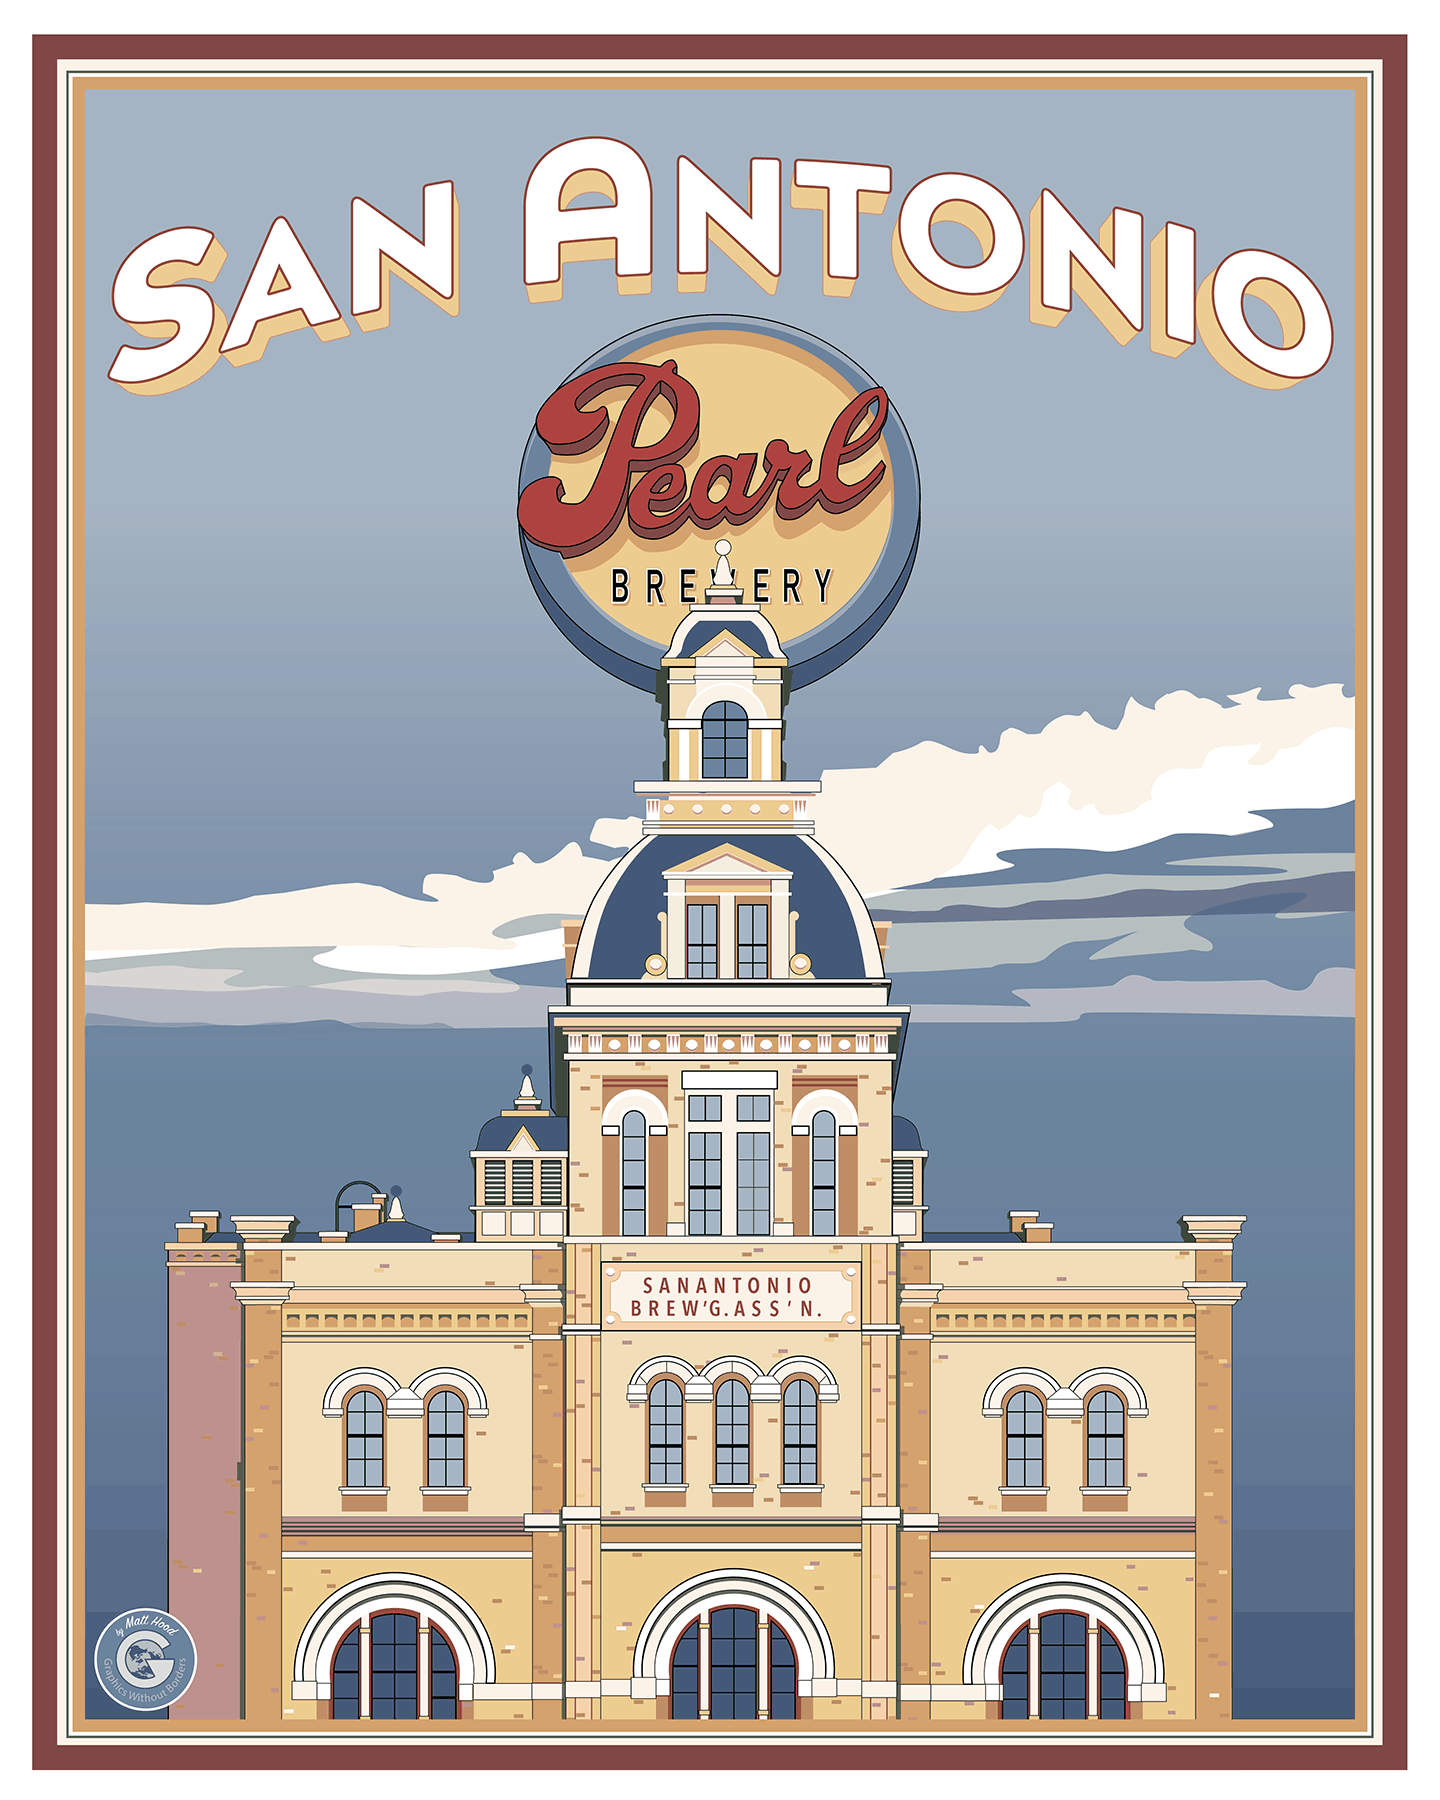 Travel poster for San Antonio's Pearl Brewery